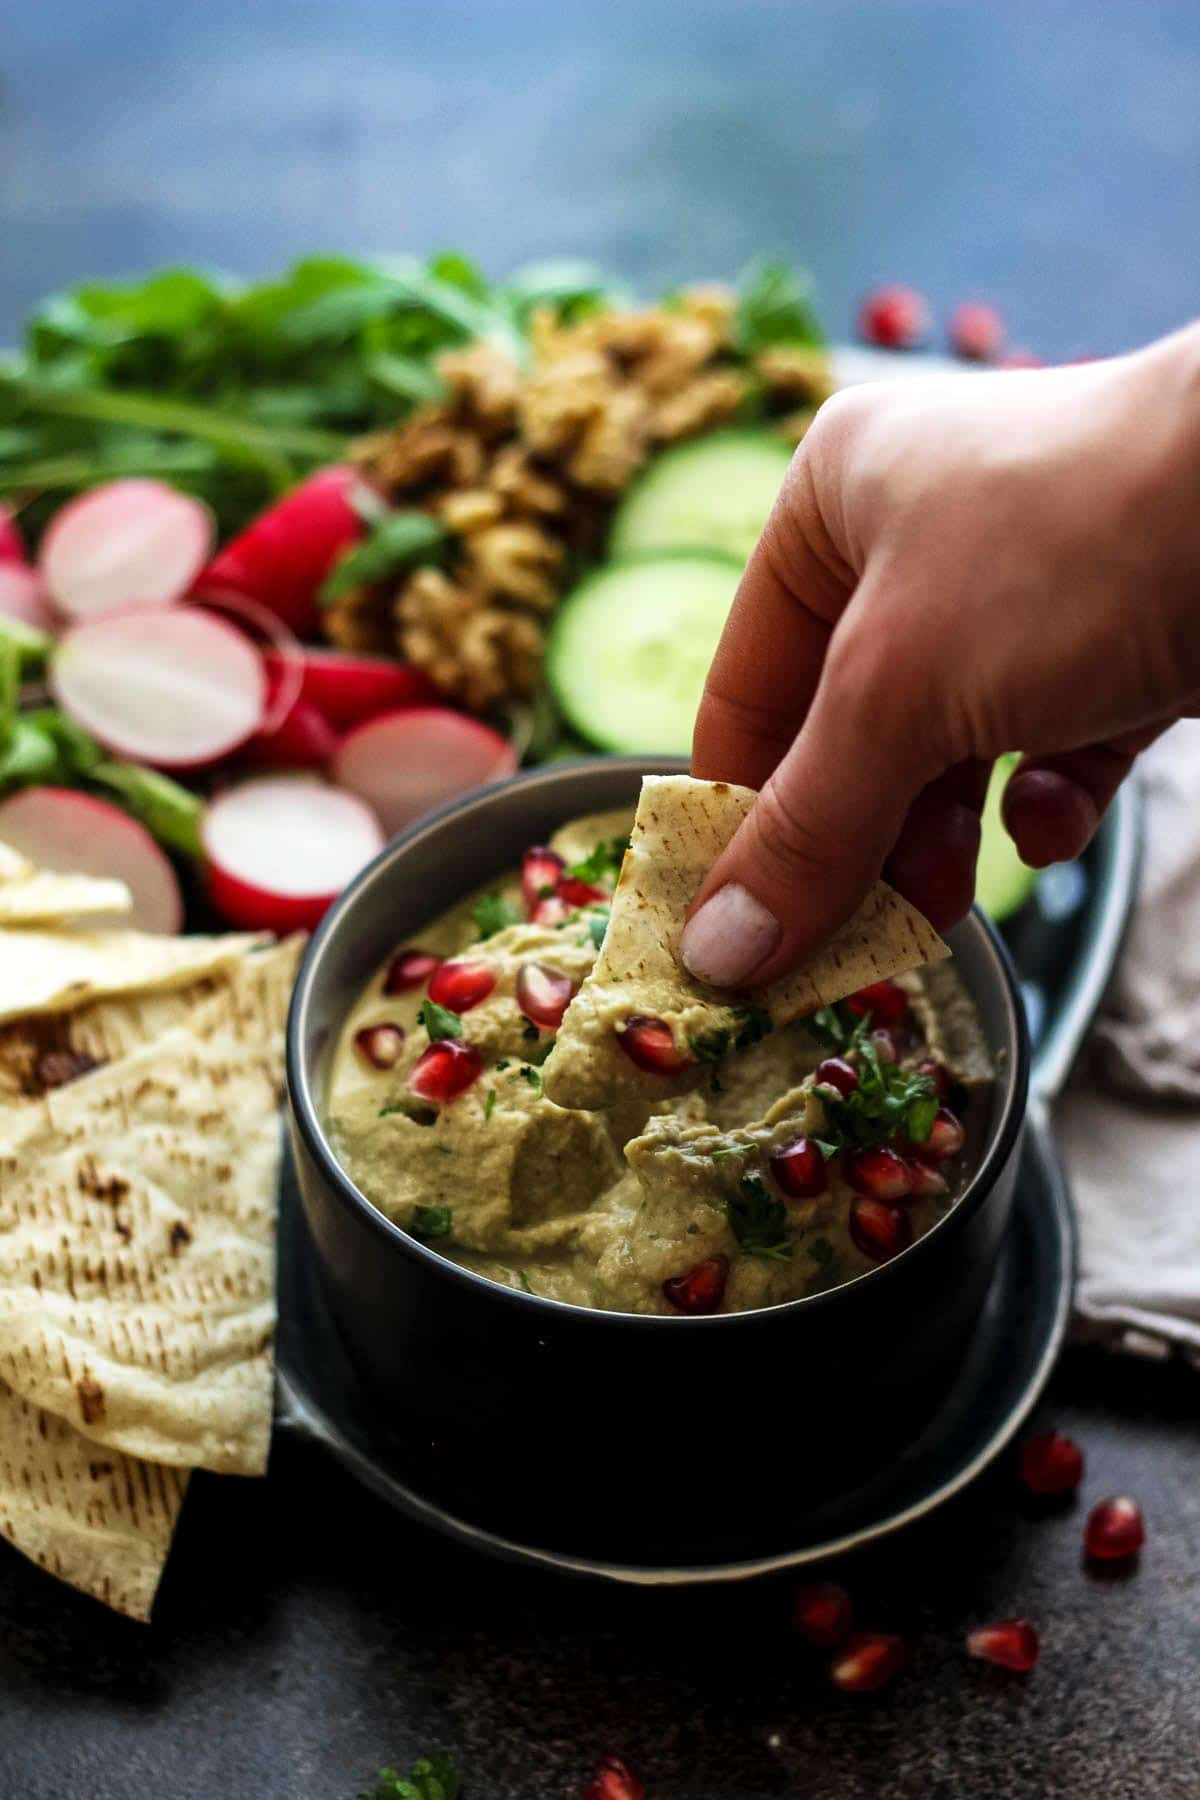 Dipping Pita Chips in an Eggplant Dip